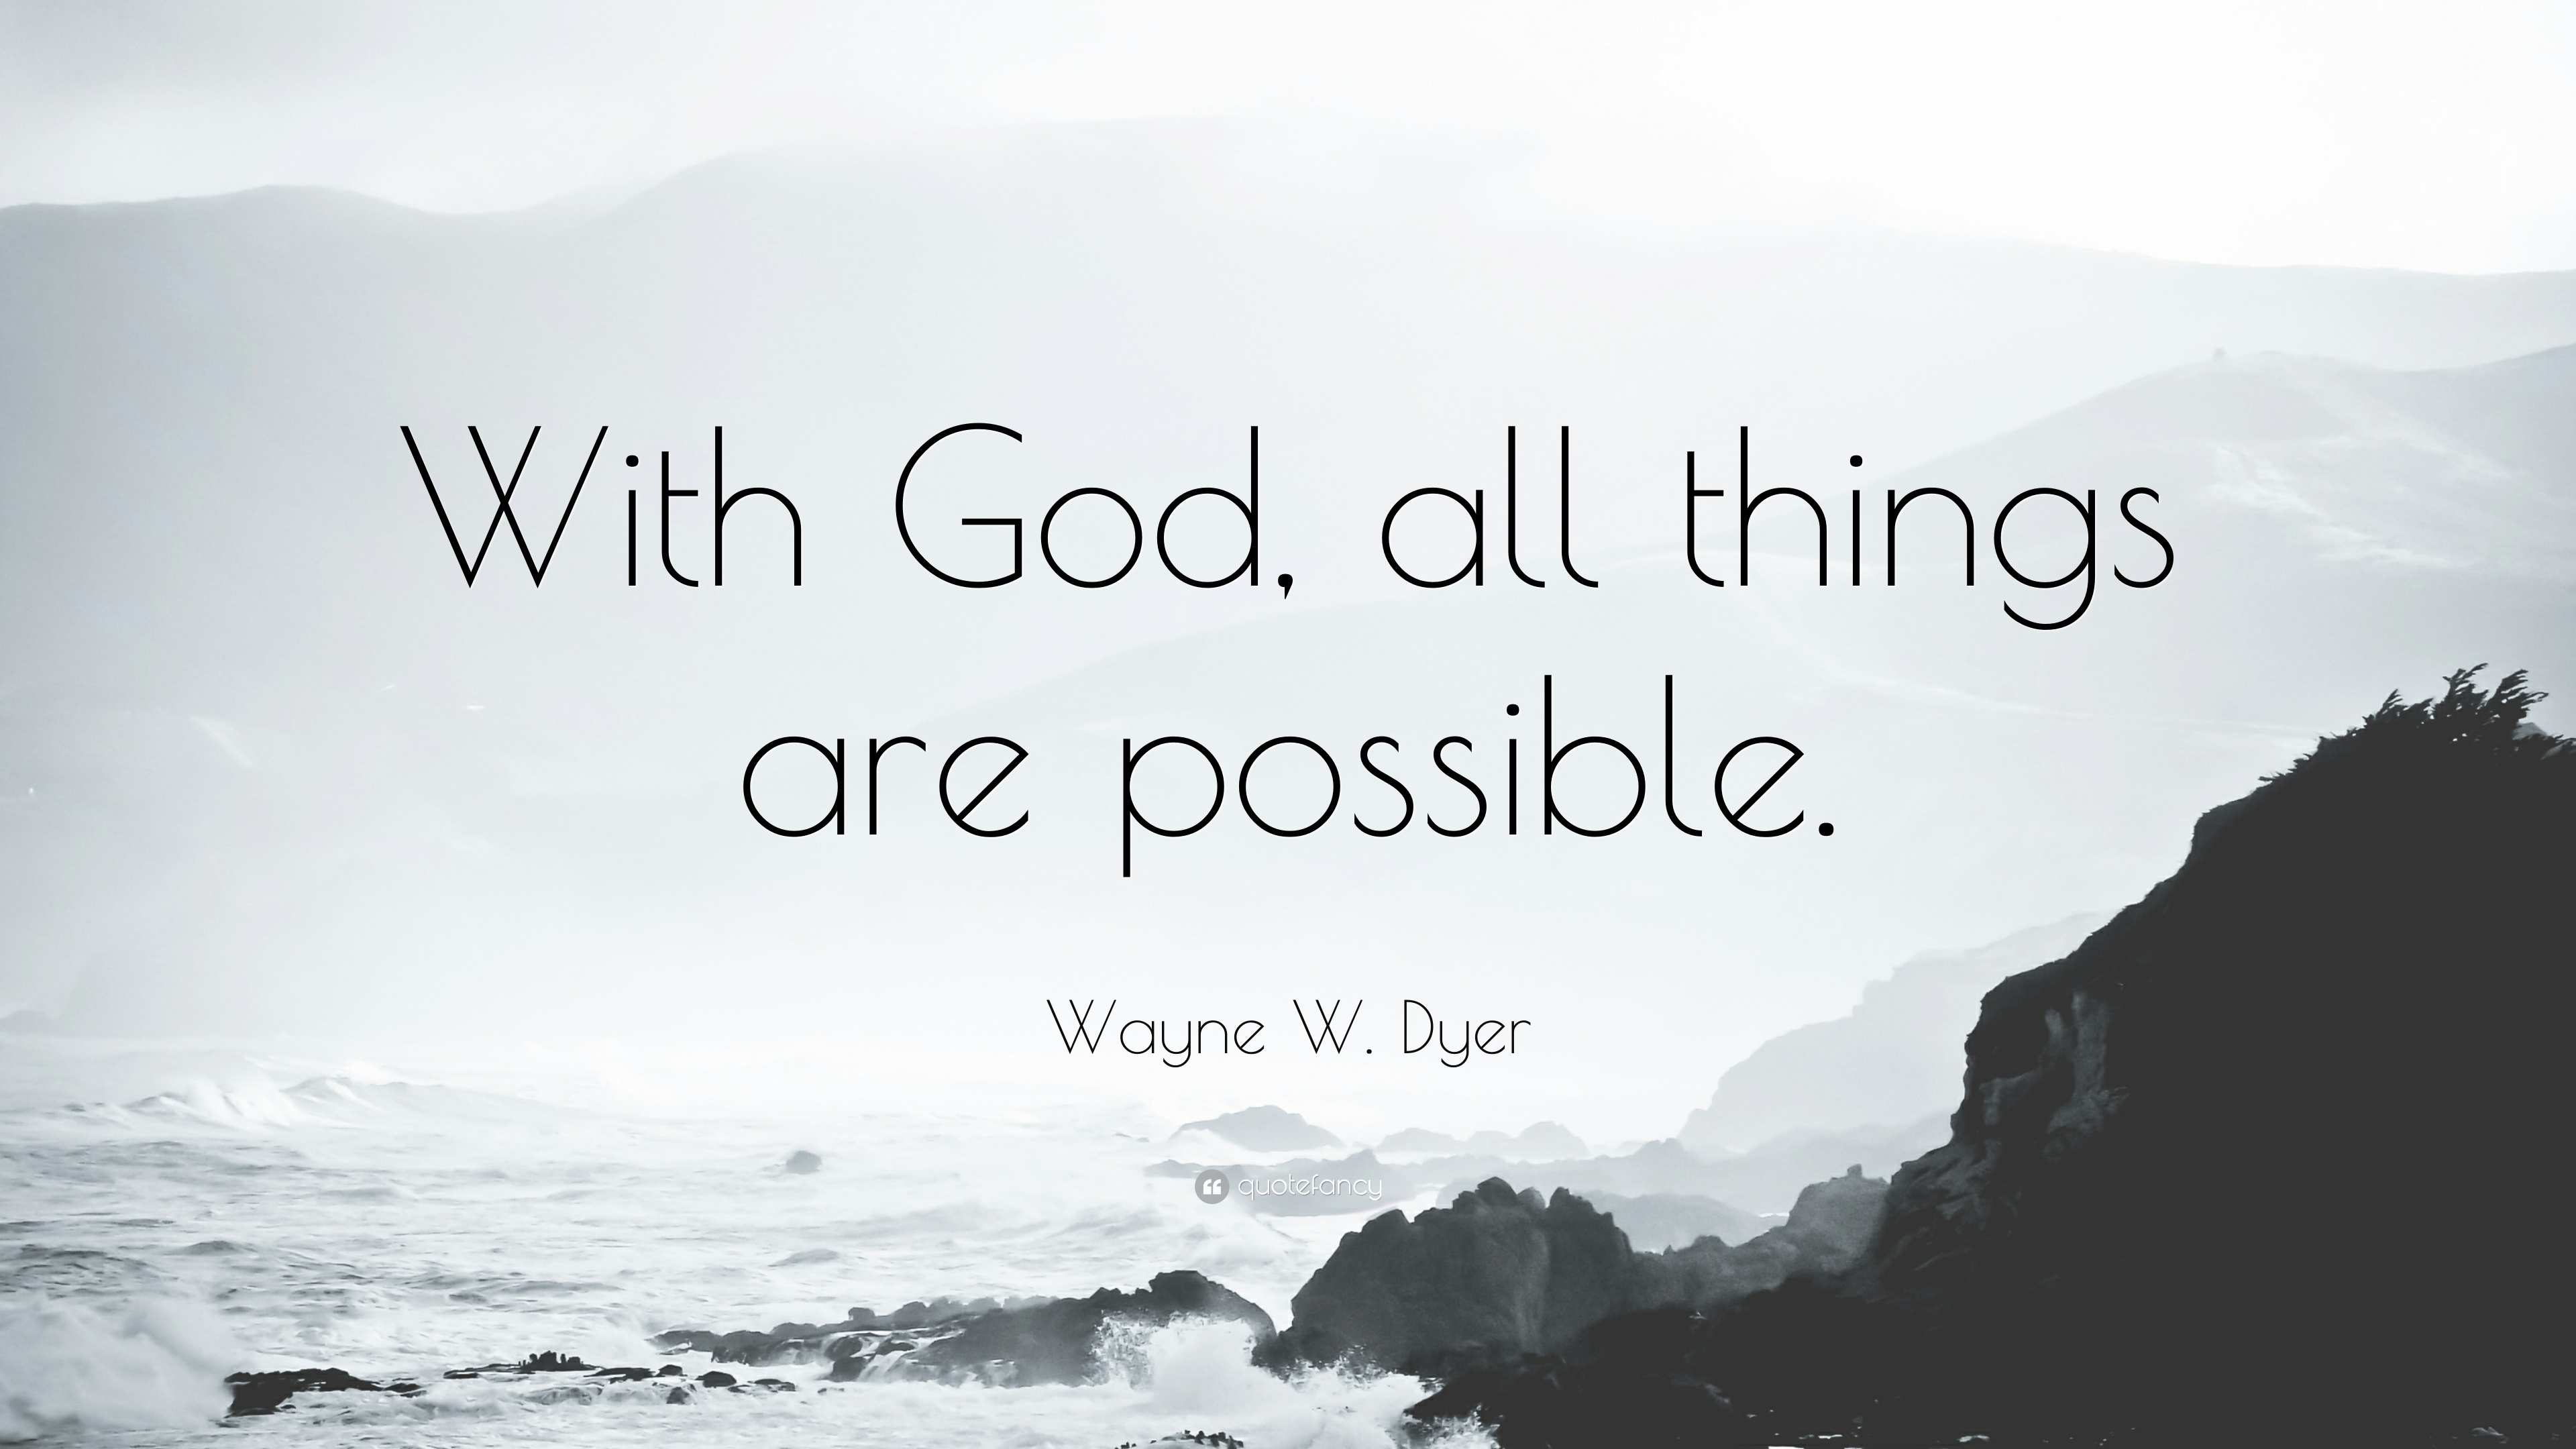 Wayne W Dyer Quote With God All Things Are Possible 12